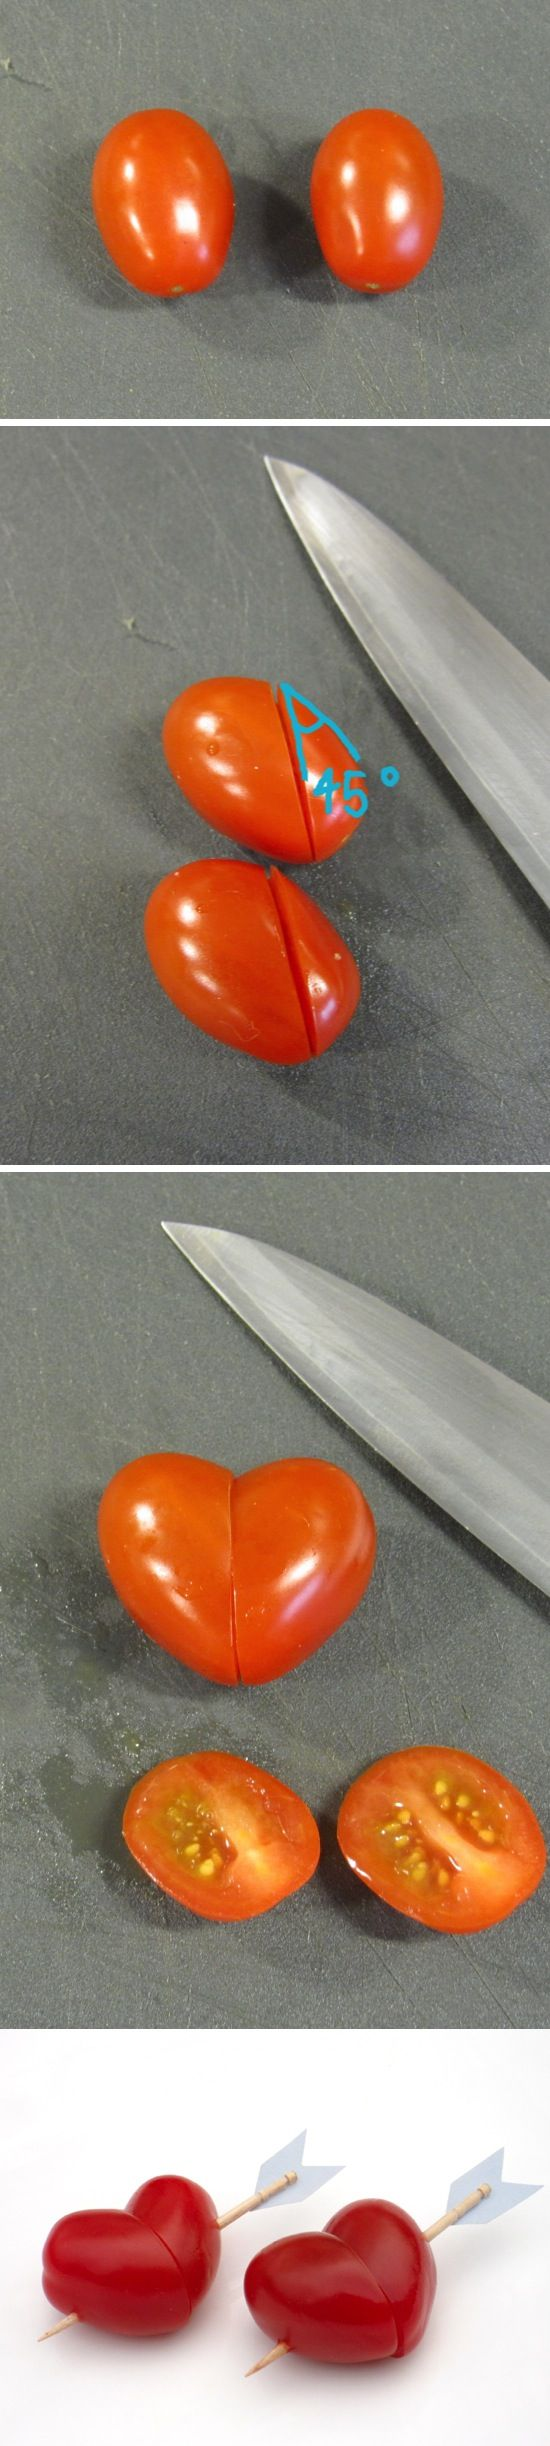 Heart Shaped Cherry Tomatoes  =) I am SO doing this!!